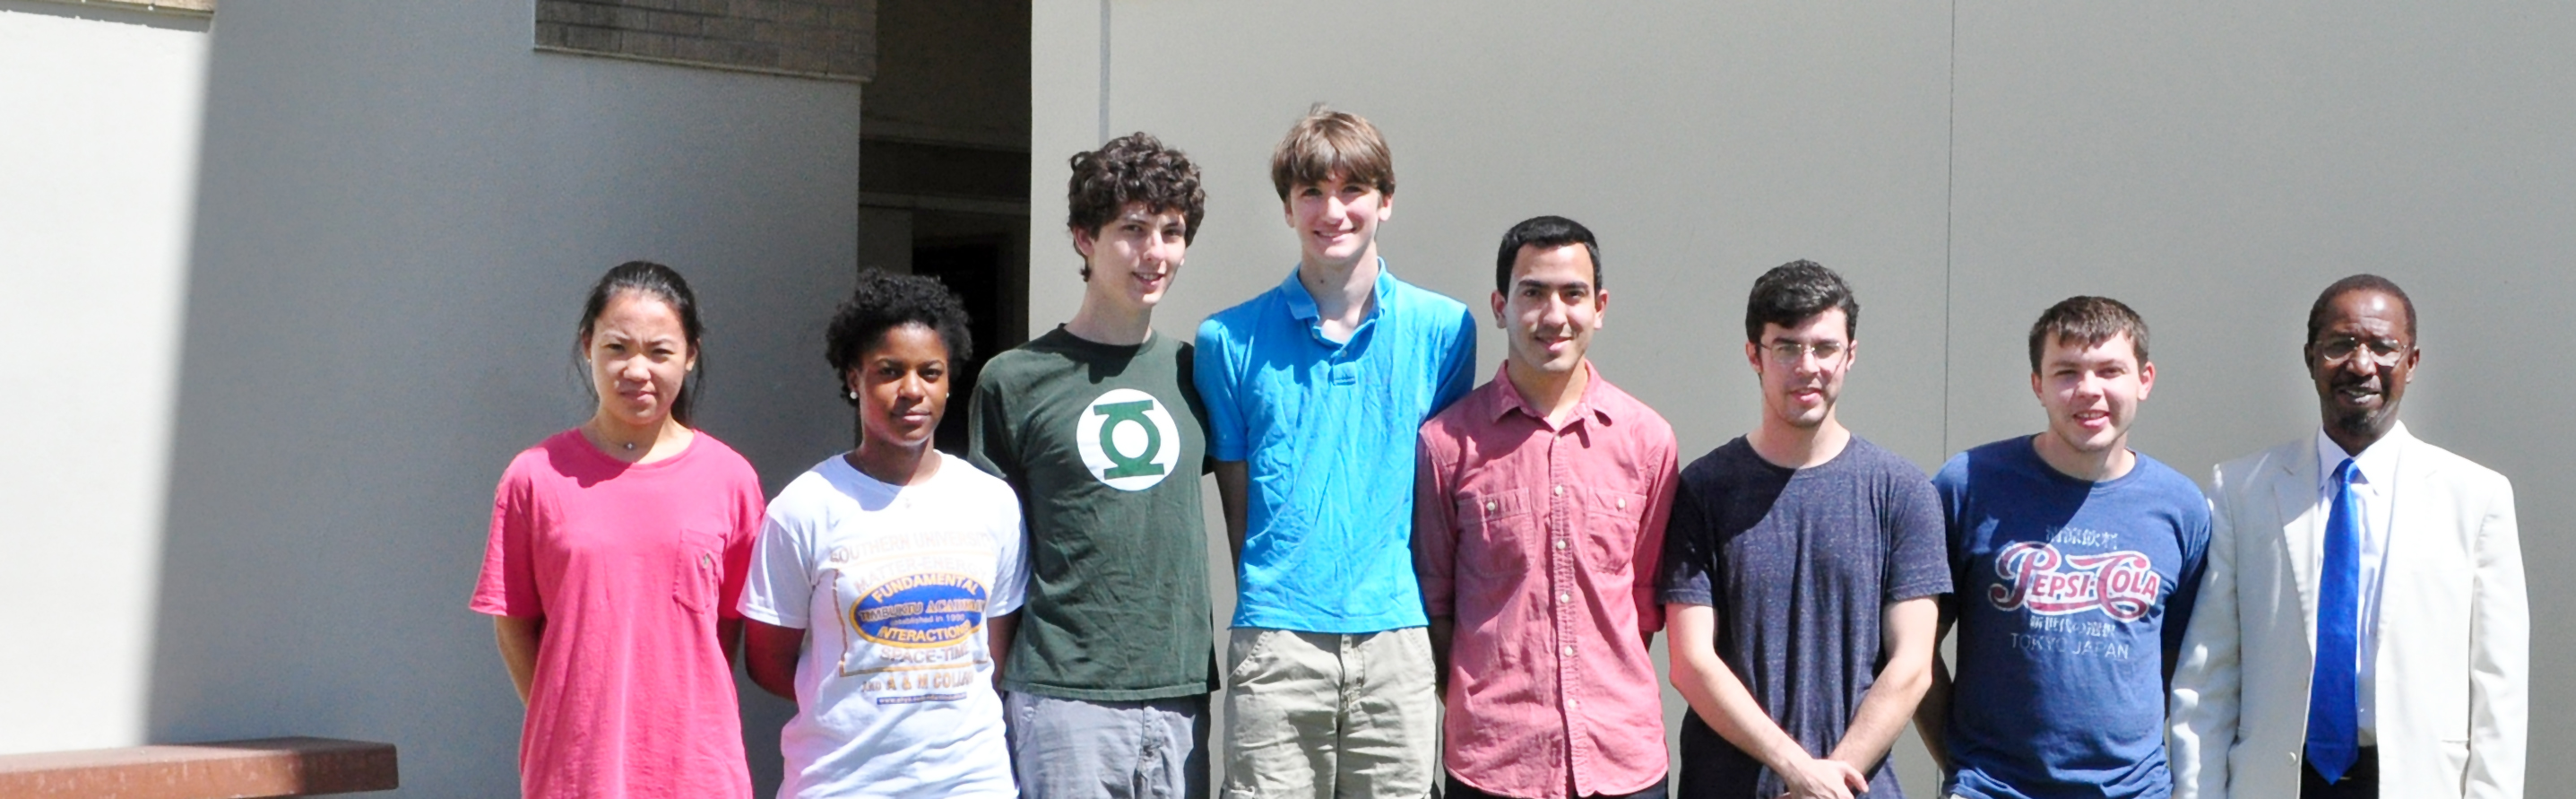 The Research Experiences for Undergraduates program at SU, from left to right, are: Hyeyon Kim from Vanderbilt University; Daneisha Blair from Southern University; Daniel Polin, New York University; Joshua Ziegler, Case Western University; Jerry Martinez, Pomona College; Christopher Schayer, LSU; Robert Stewart, Akron University; and Dr. Diola Bagayoko – Lead SUBR-LASiGMA Investigator.  (Photo by John Oubre)